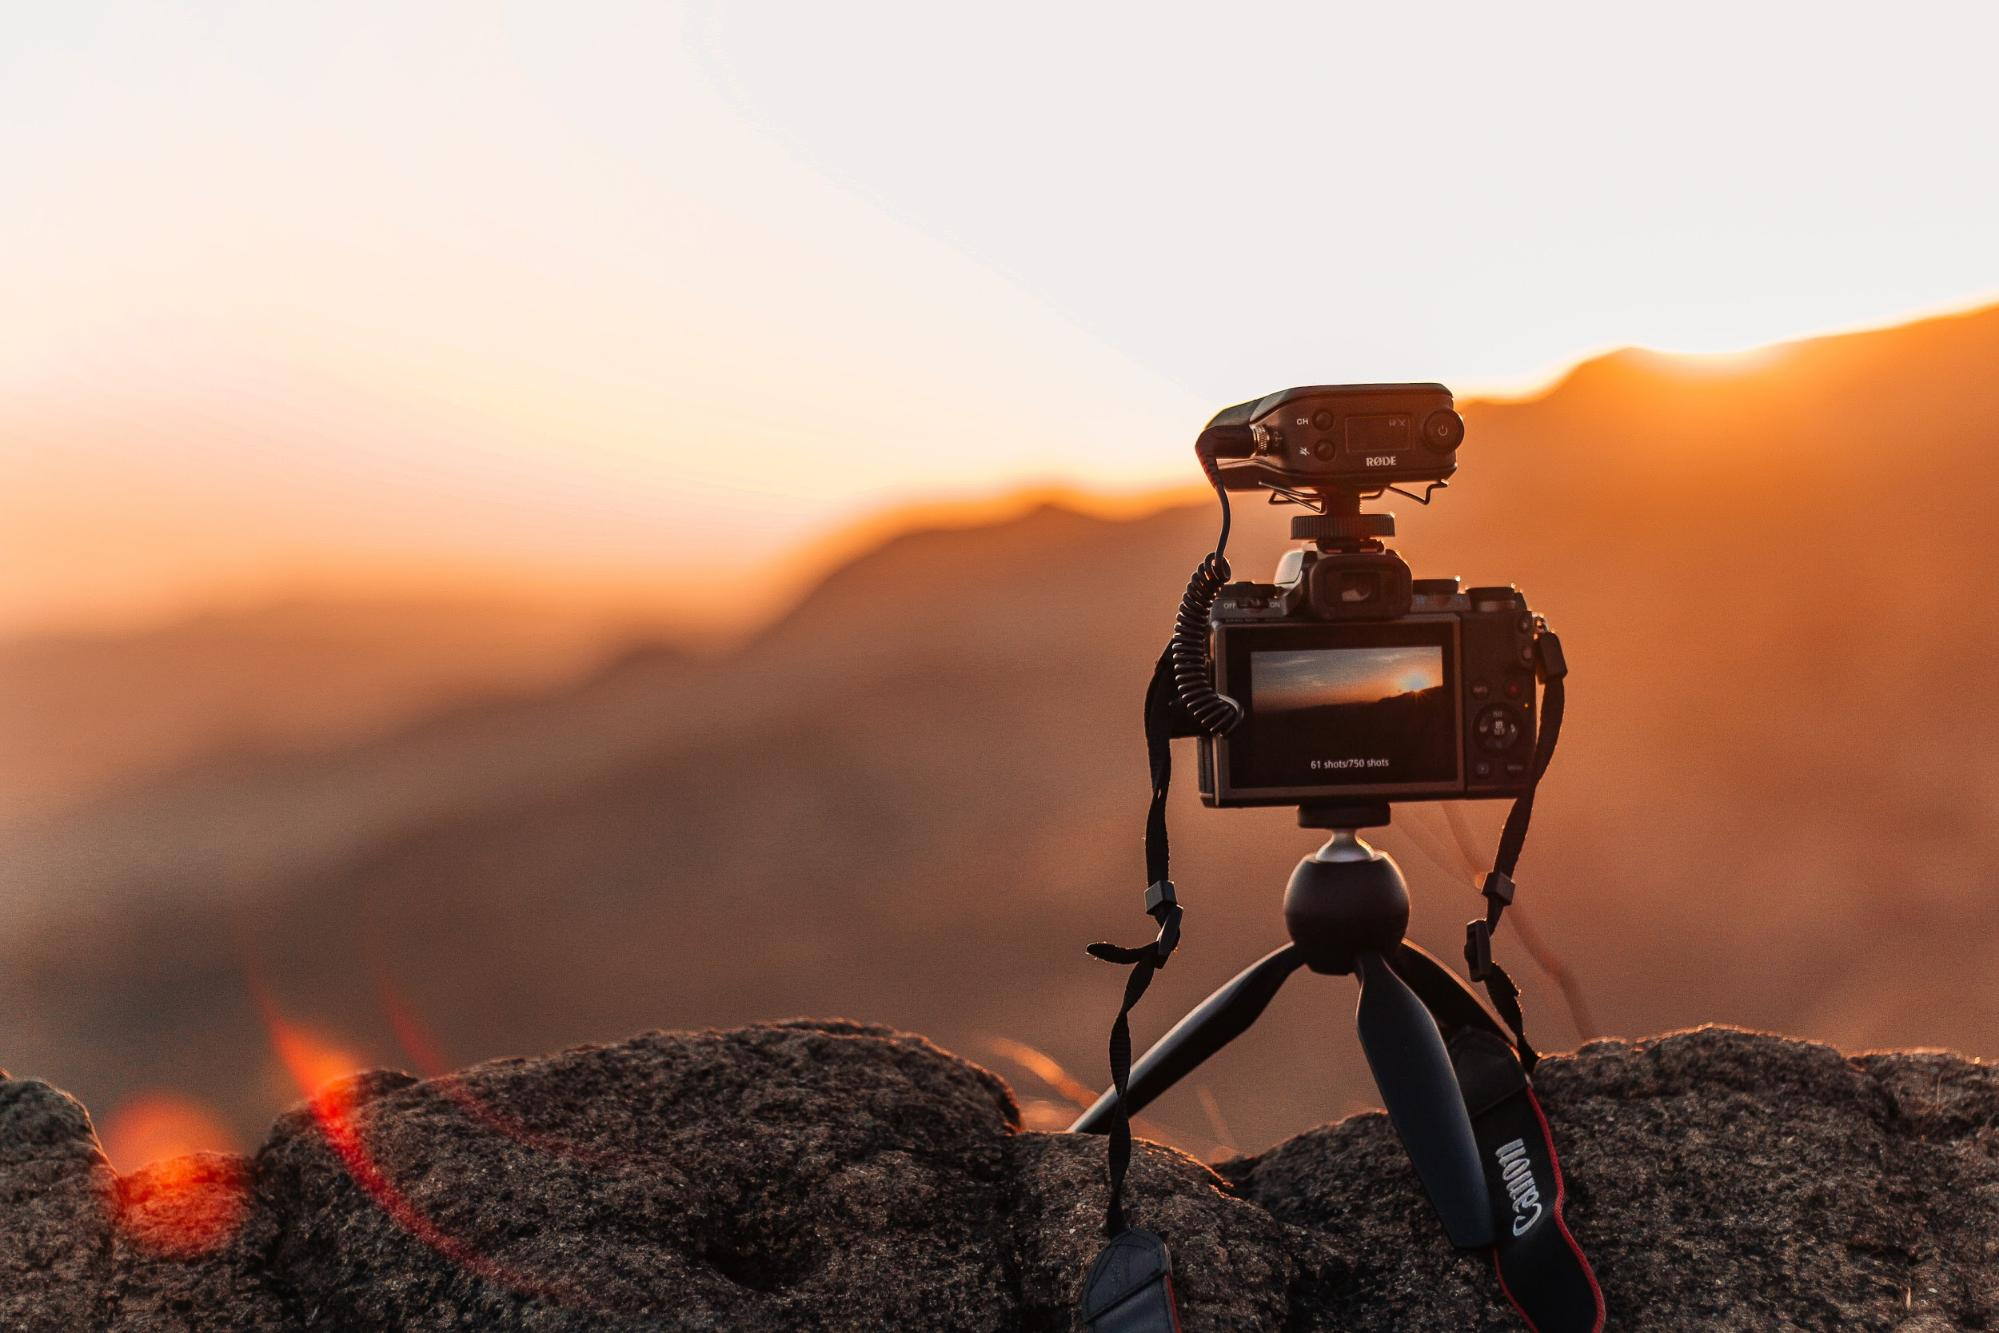 Camera on mini tripod recording sunset